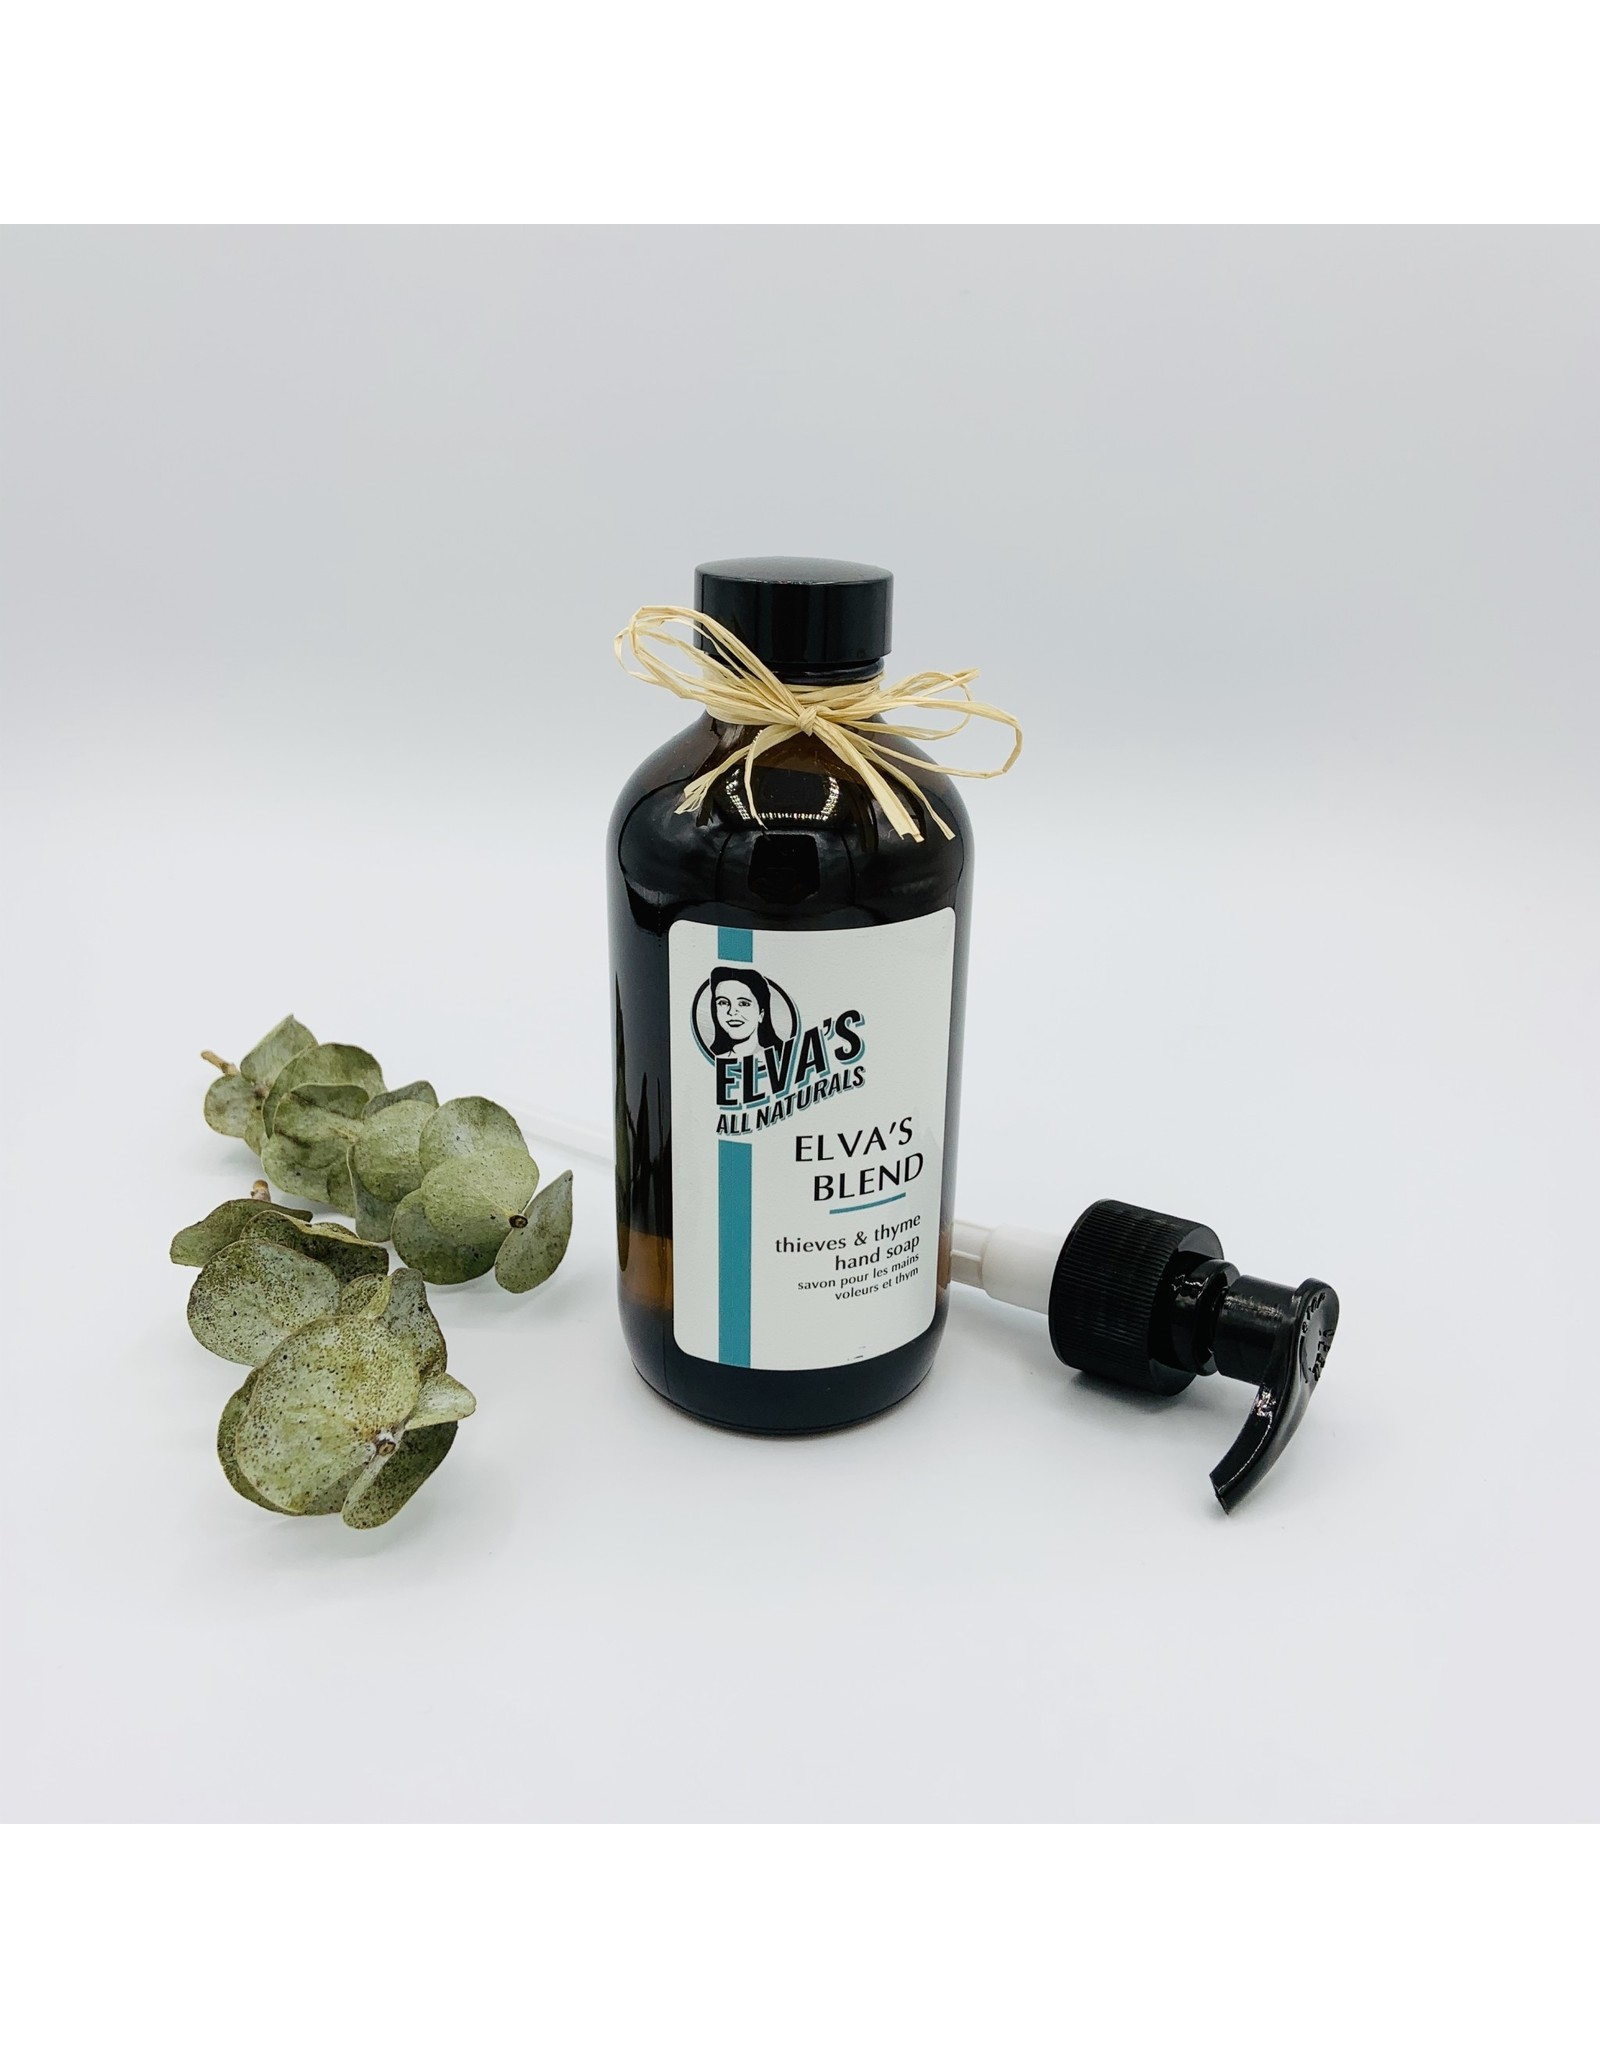 Elva's All Naturals Thieves & Thyme Herbal Hand Soap by Elva's All Naturals